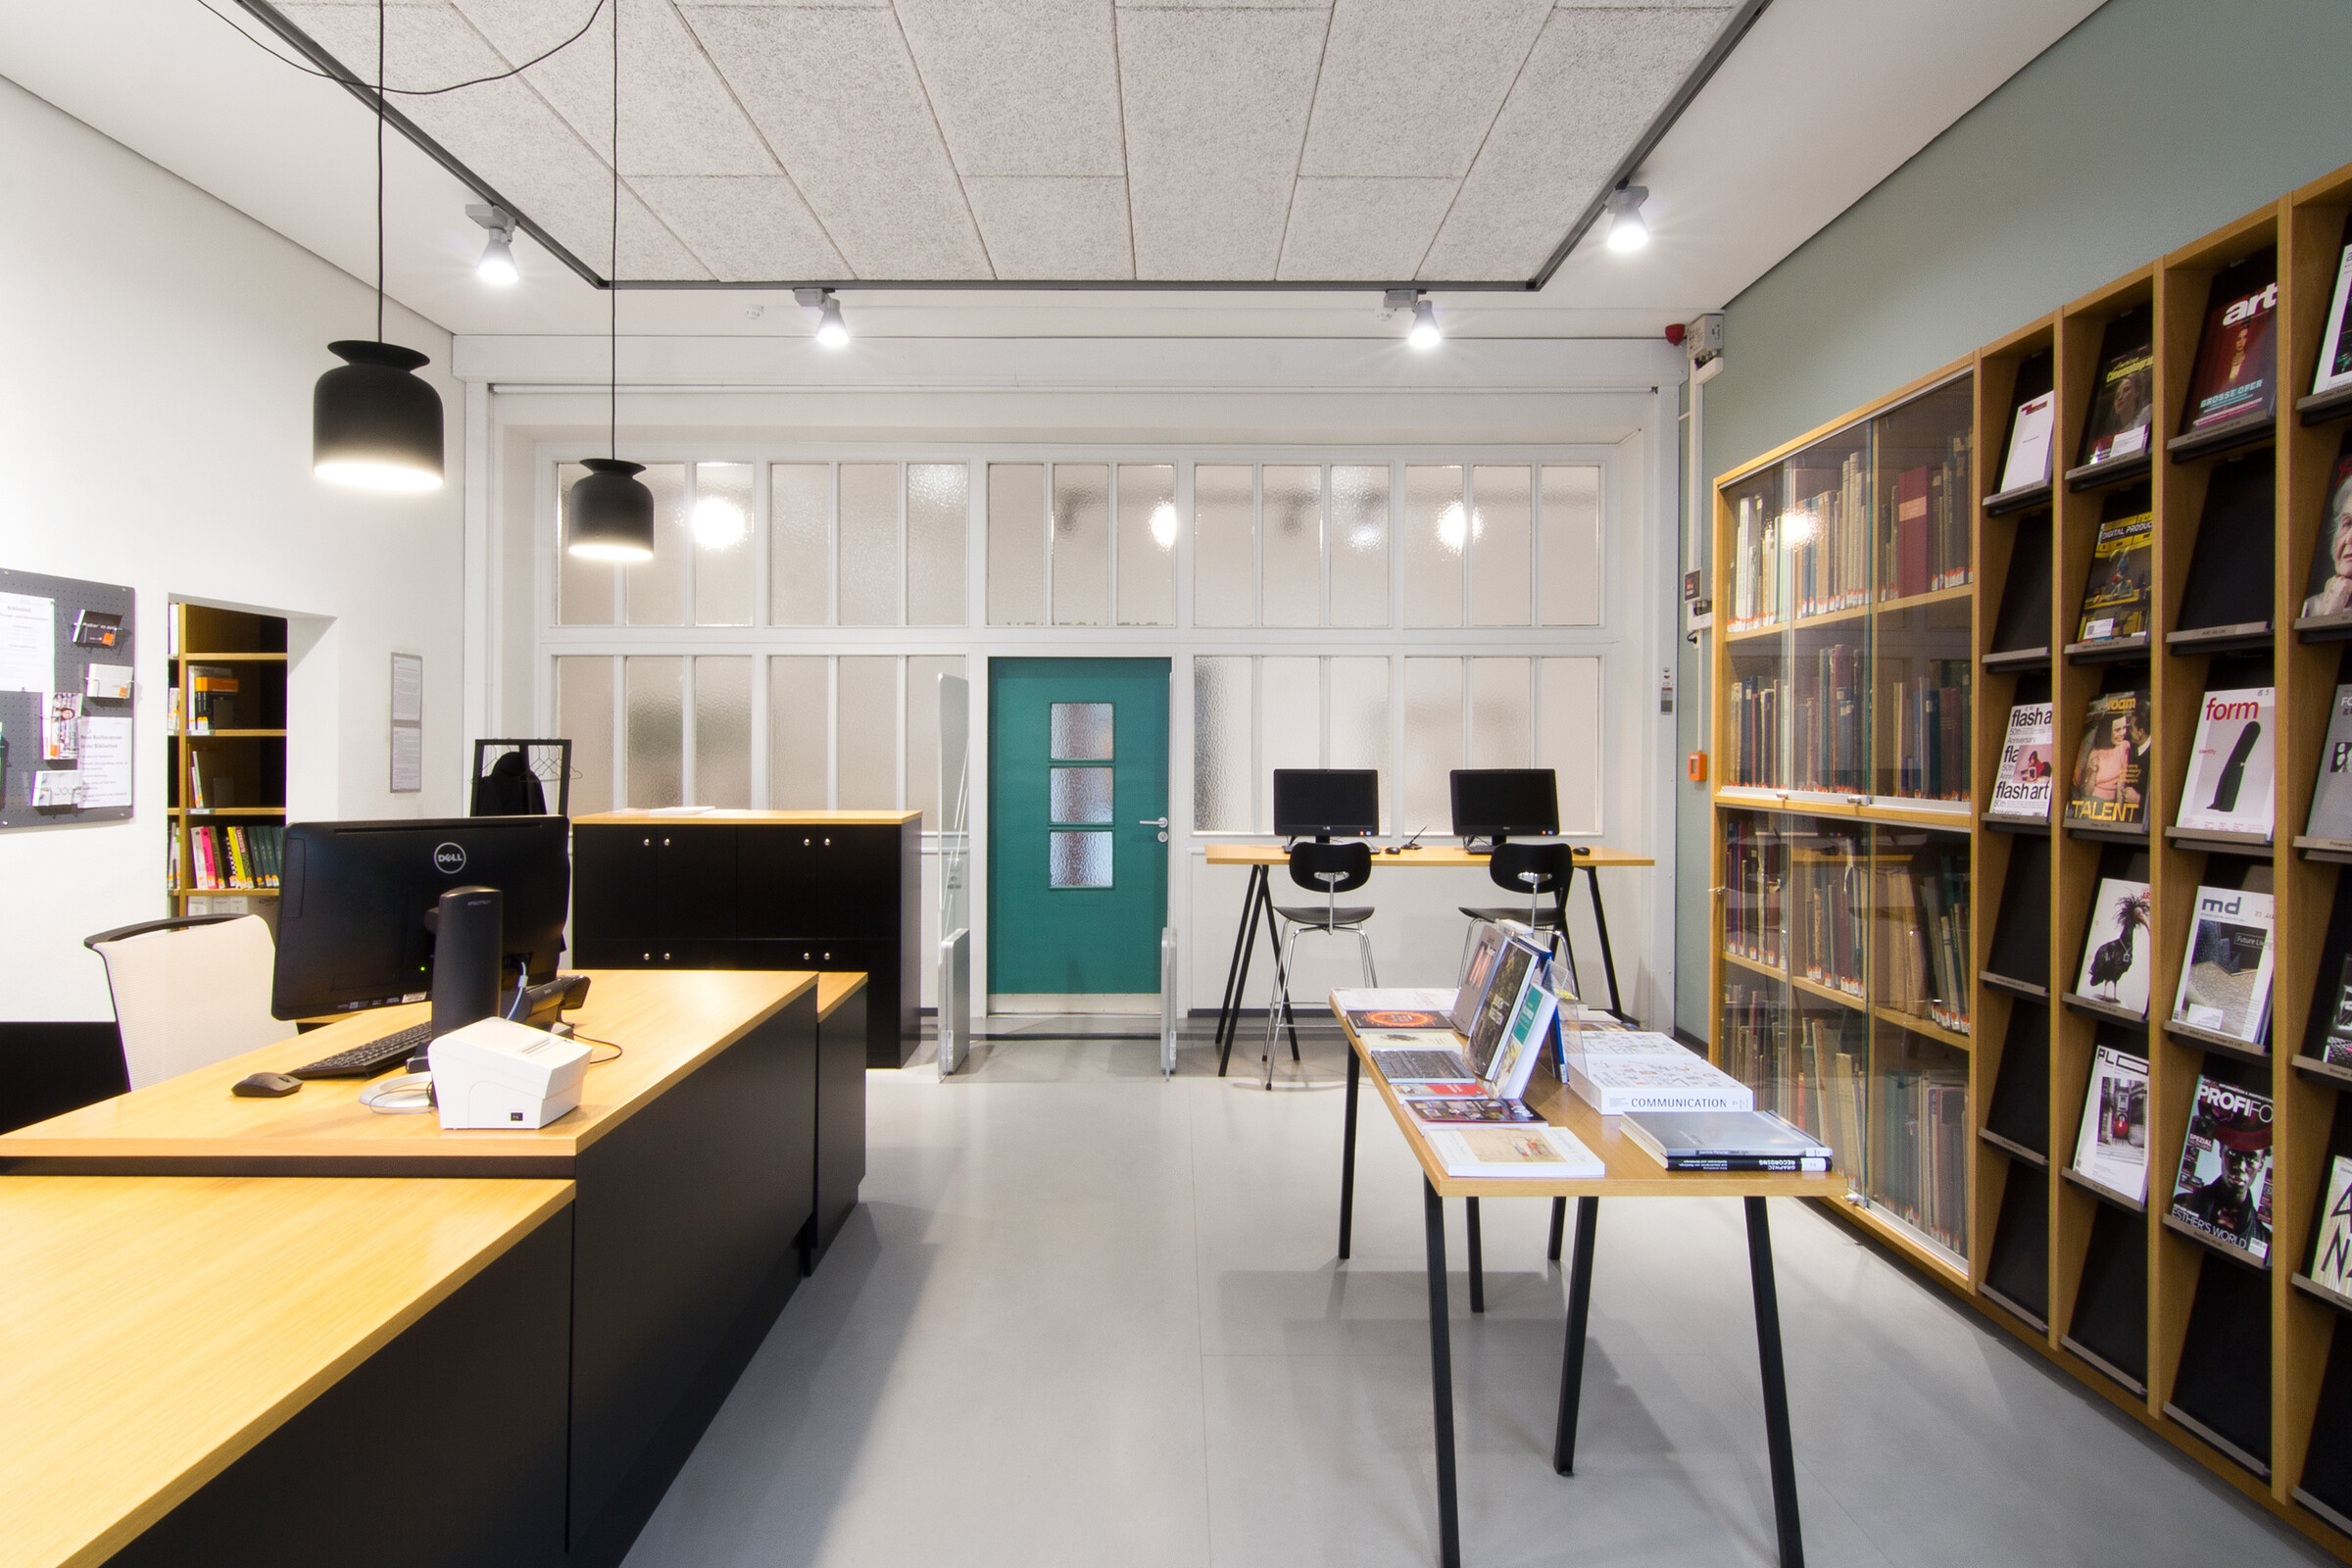 Library Of The Dortmund University Of Applied Sciences And Arts Projects Please Don T Touch